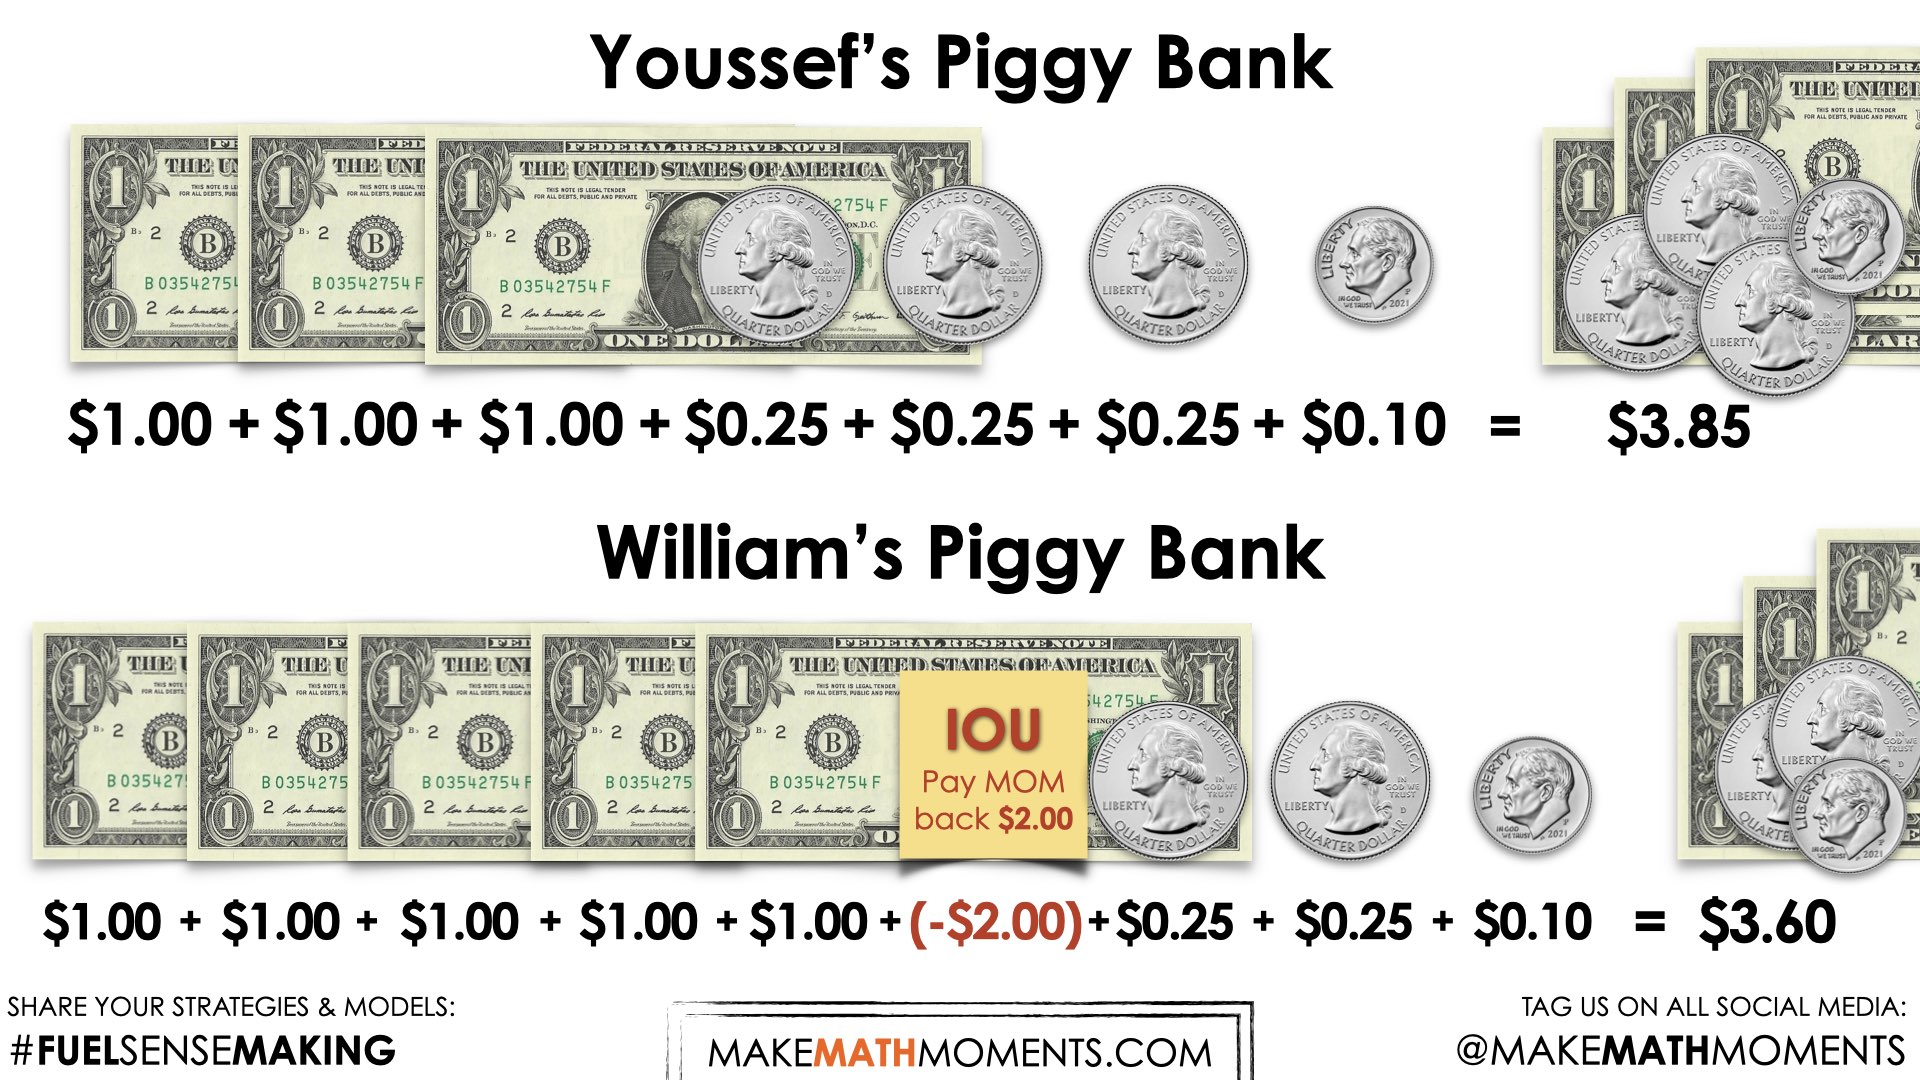 Piggy Bank Revisited [Day 3] - How Much More - 07 - SPARK Estimate Reveal Image USD.001